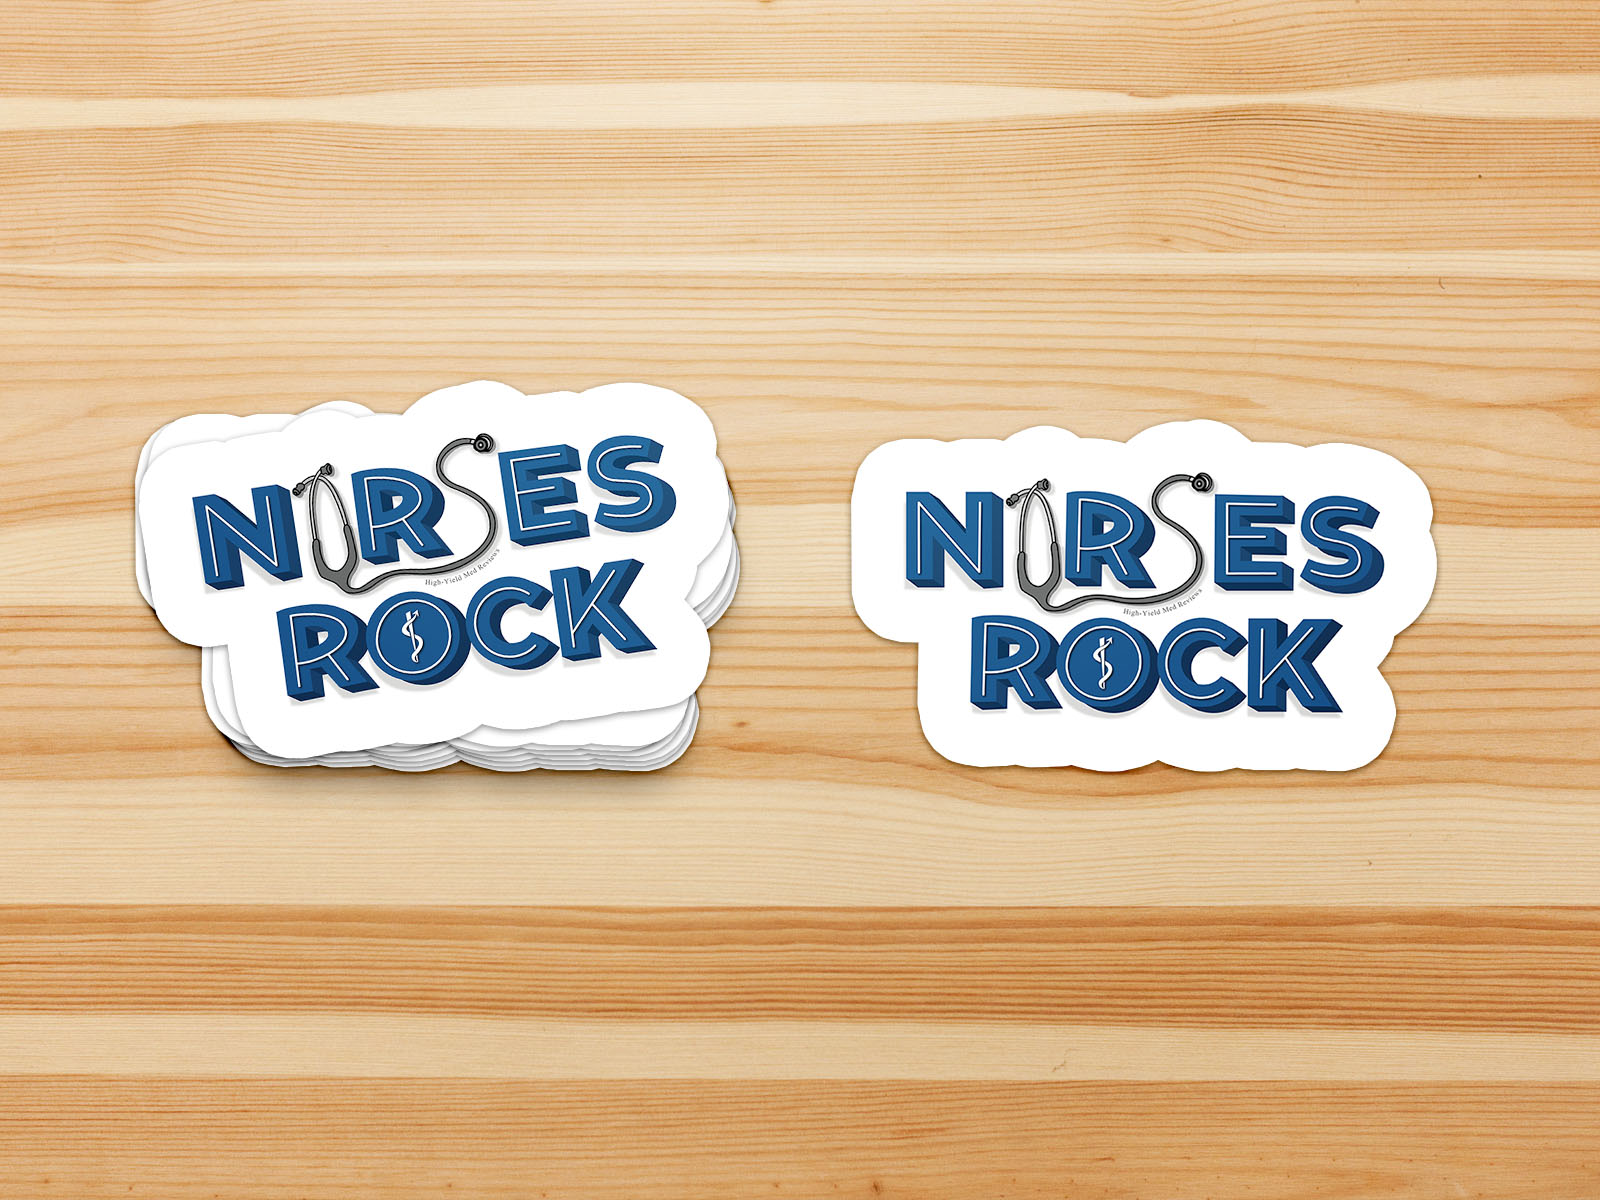 Nurses Rock Stethoscope Text on Wood